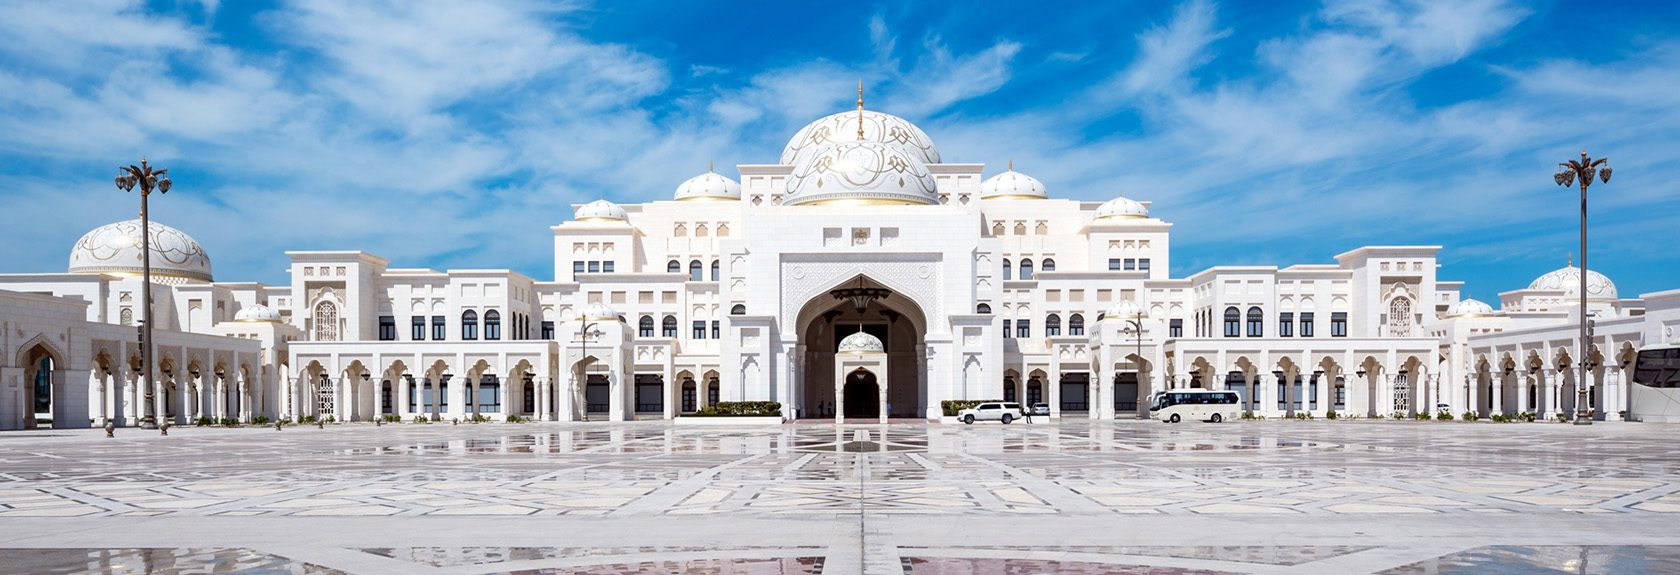 The Qasr Al Watan presidential palace in Abu Dhabi